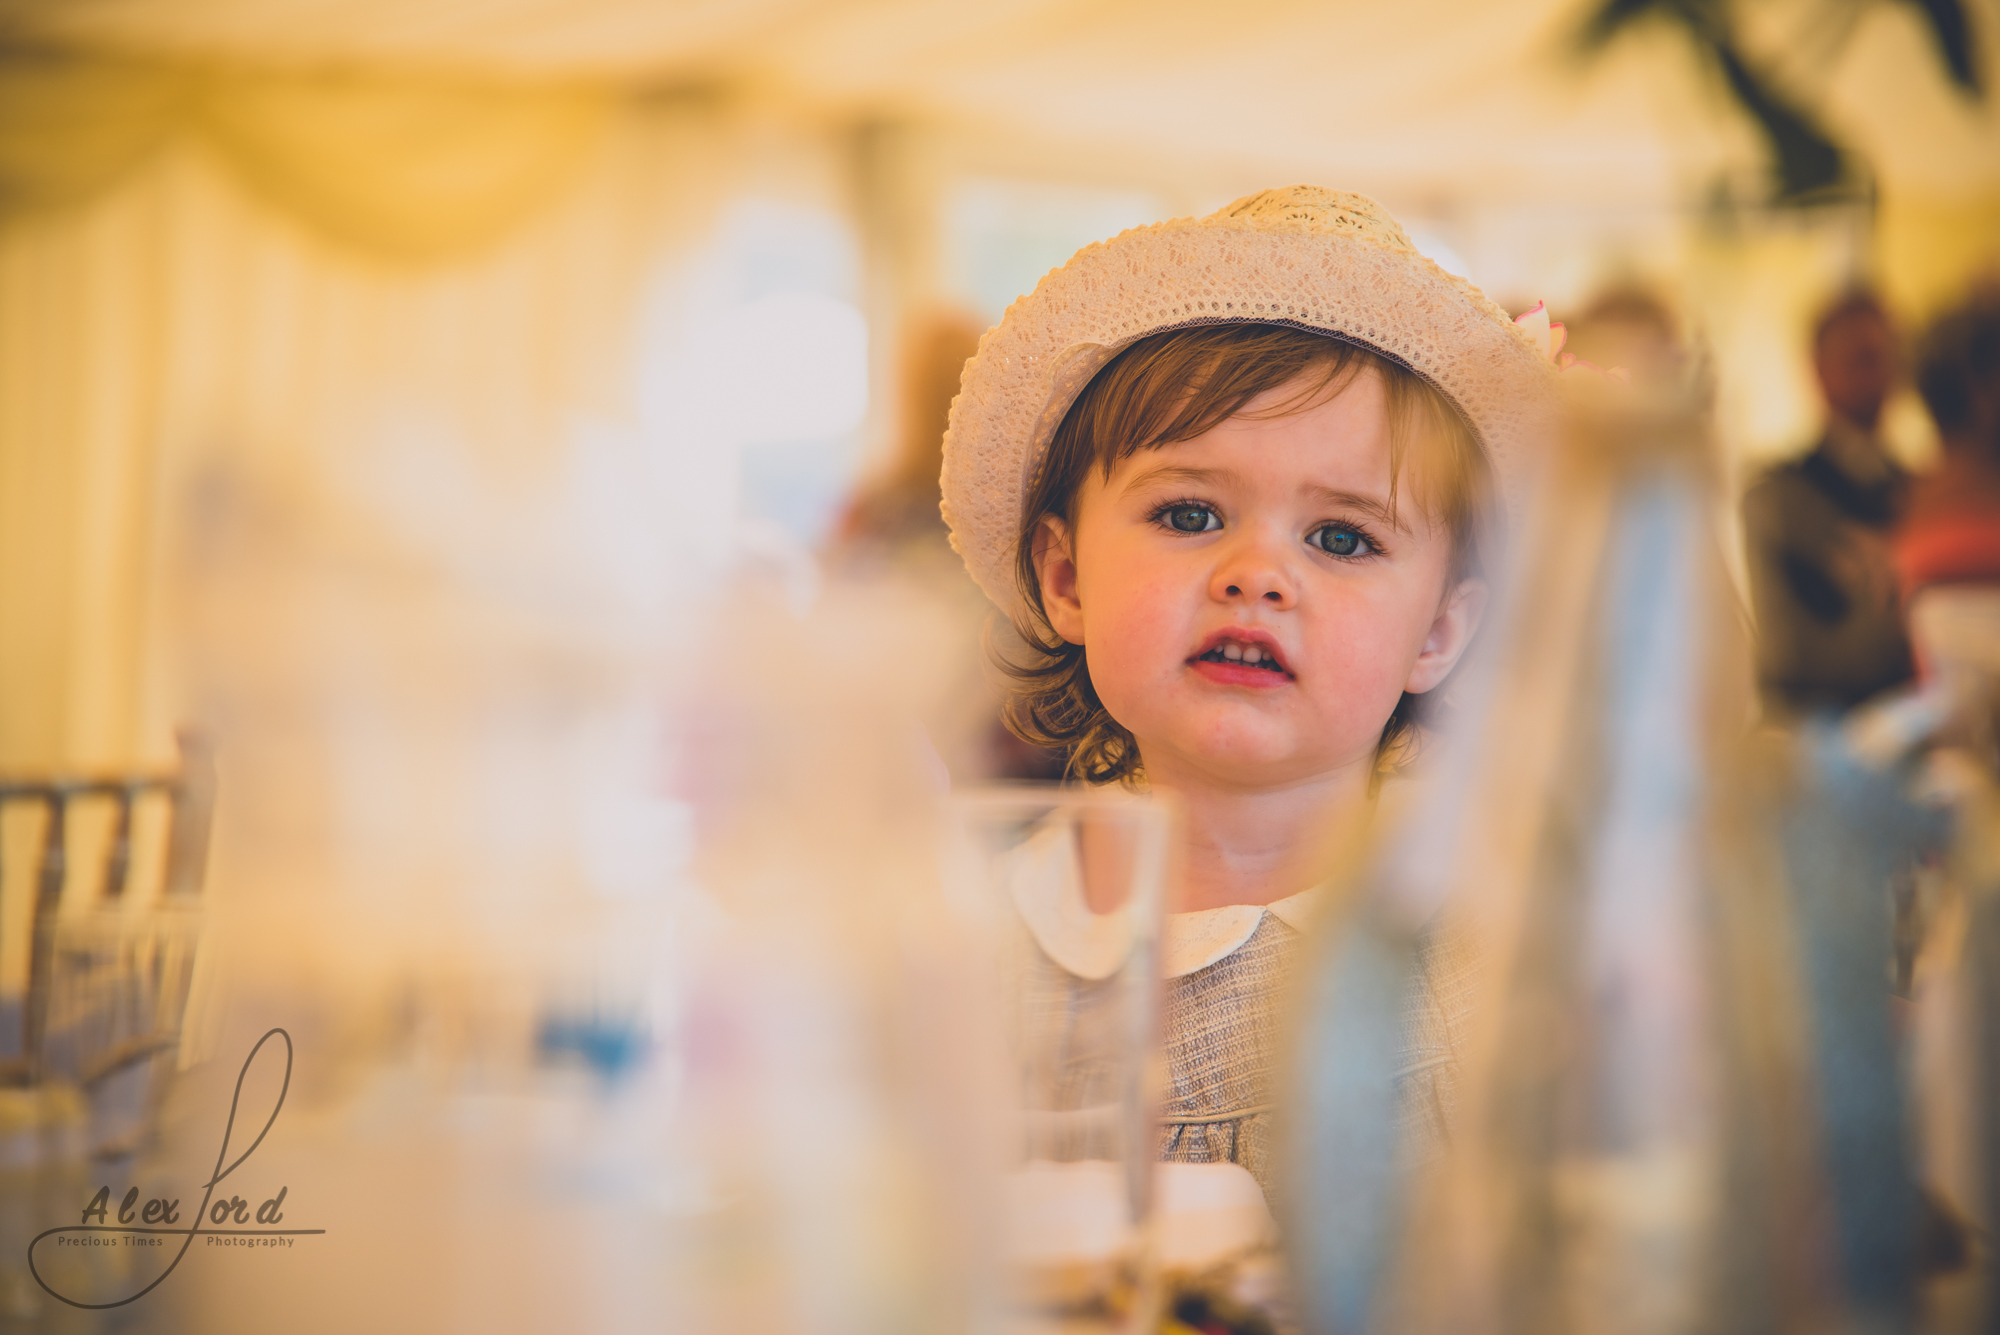 A young girl wedding guest sits at a table at ding breakfast, partly hidden by the glasses on the table